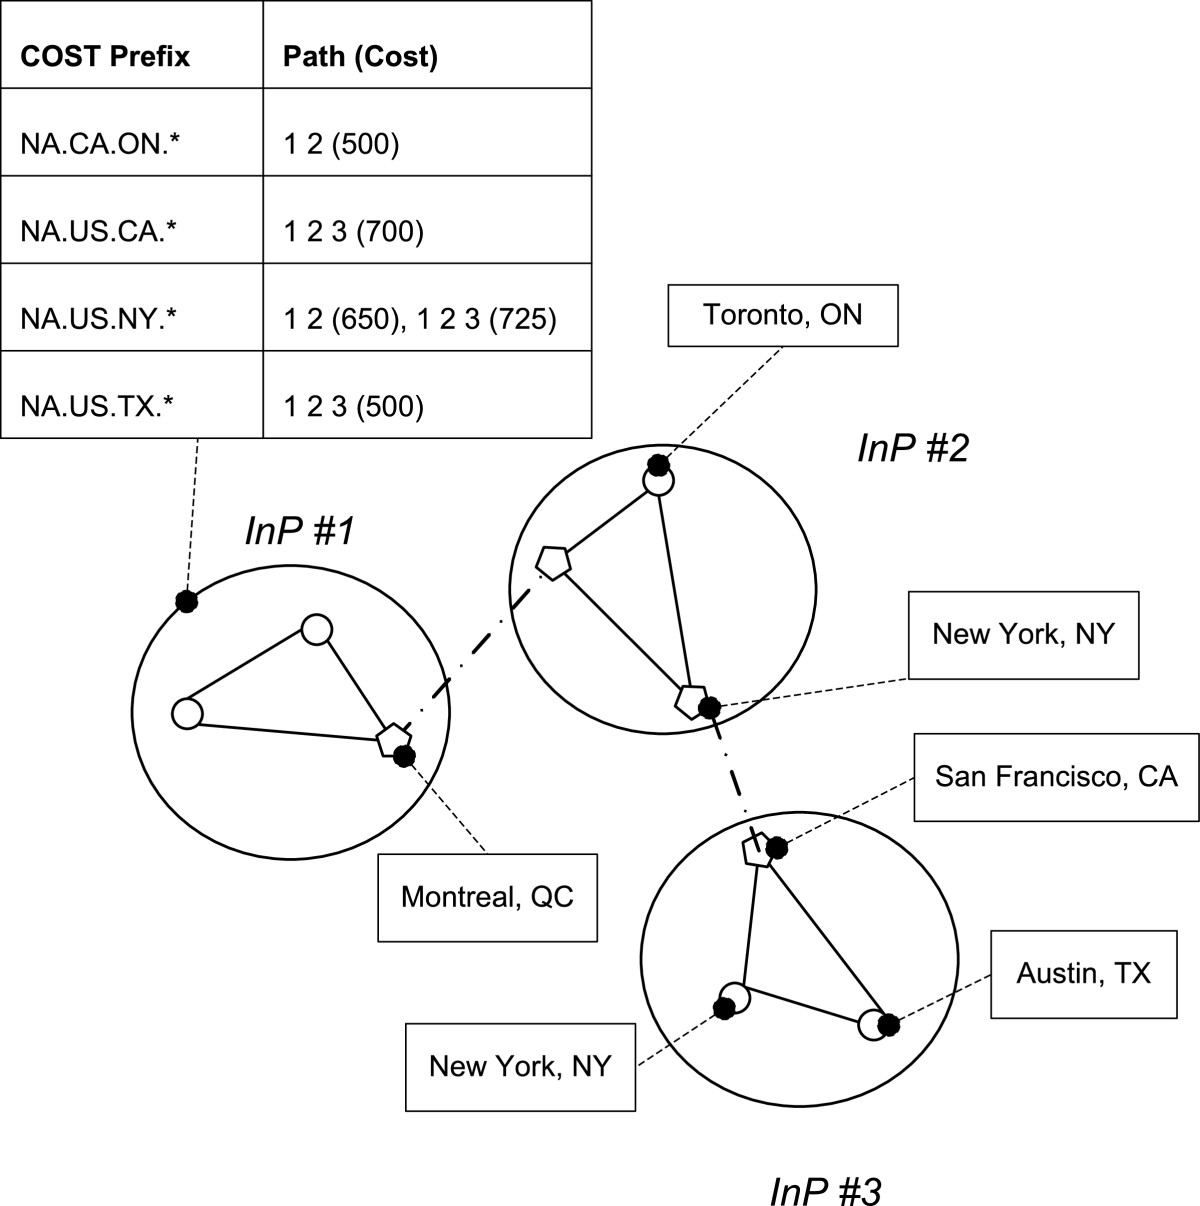 http://static-content.springer.com/image/art%3A10.1186%2F1869-0238-4-6/MediaObjects/13174_2012_Article_6_Fig8_HTML.jpg